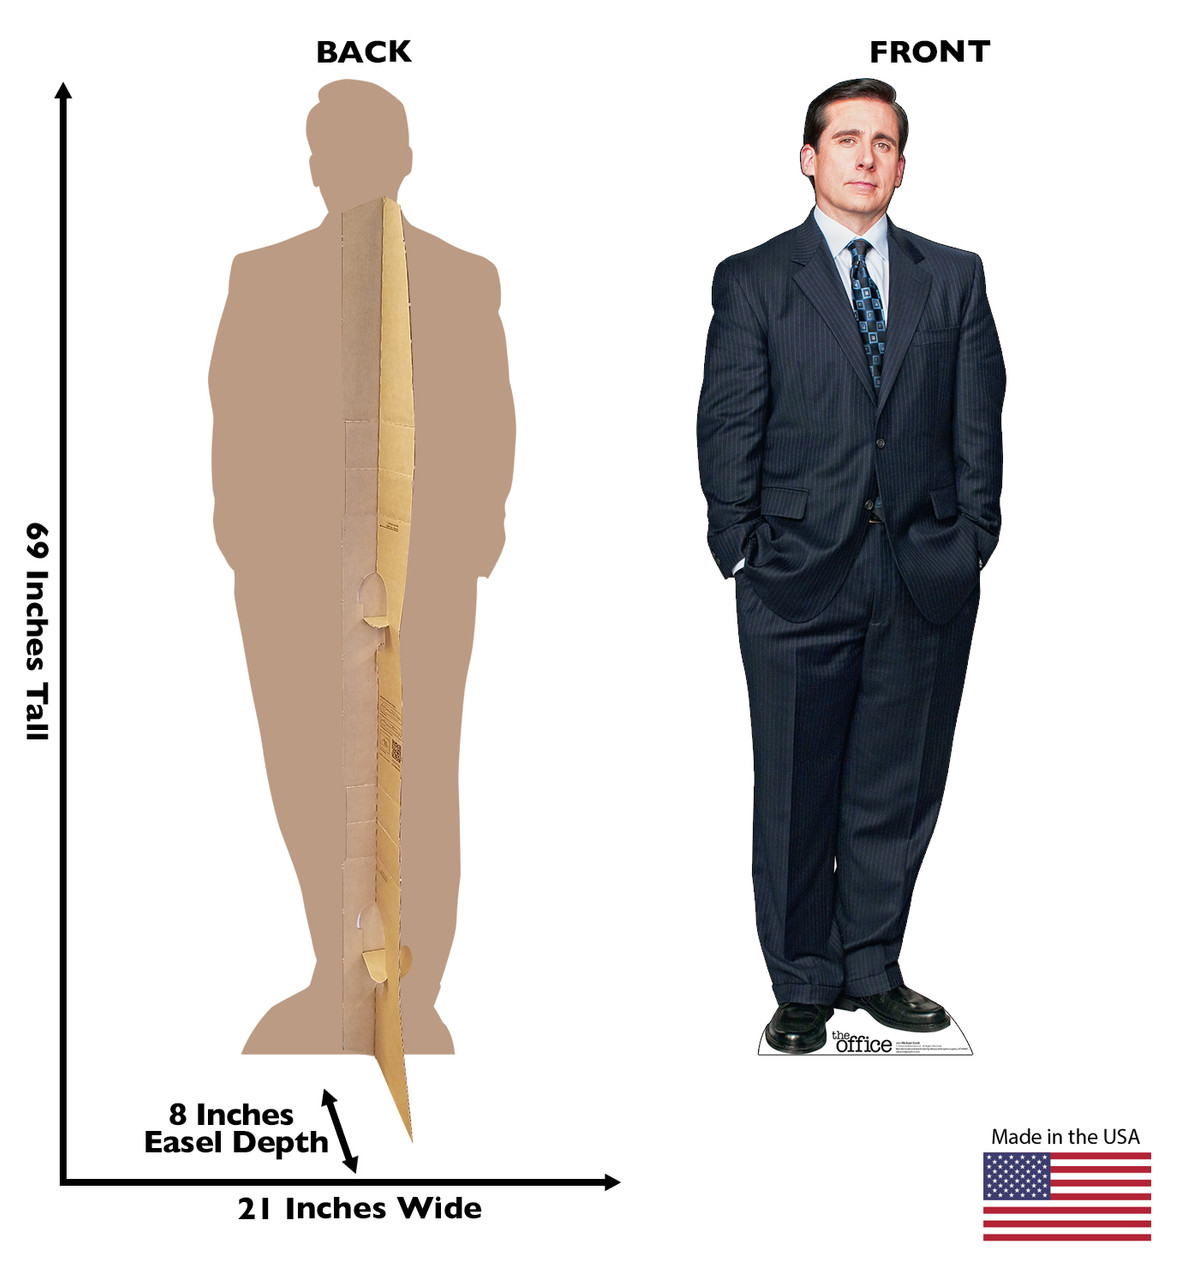 Life-size cardboard standee of Michael Scott from the Office TV show with front and back dimension.